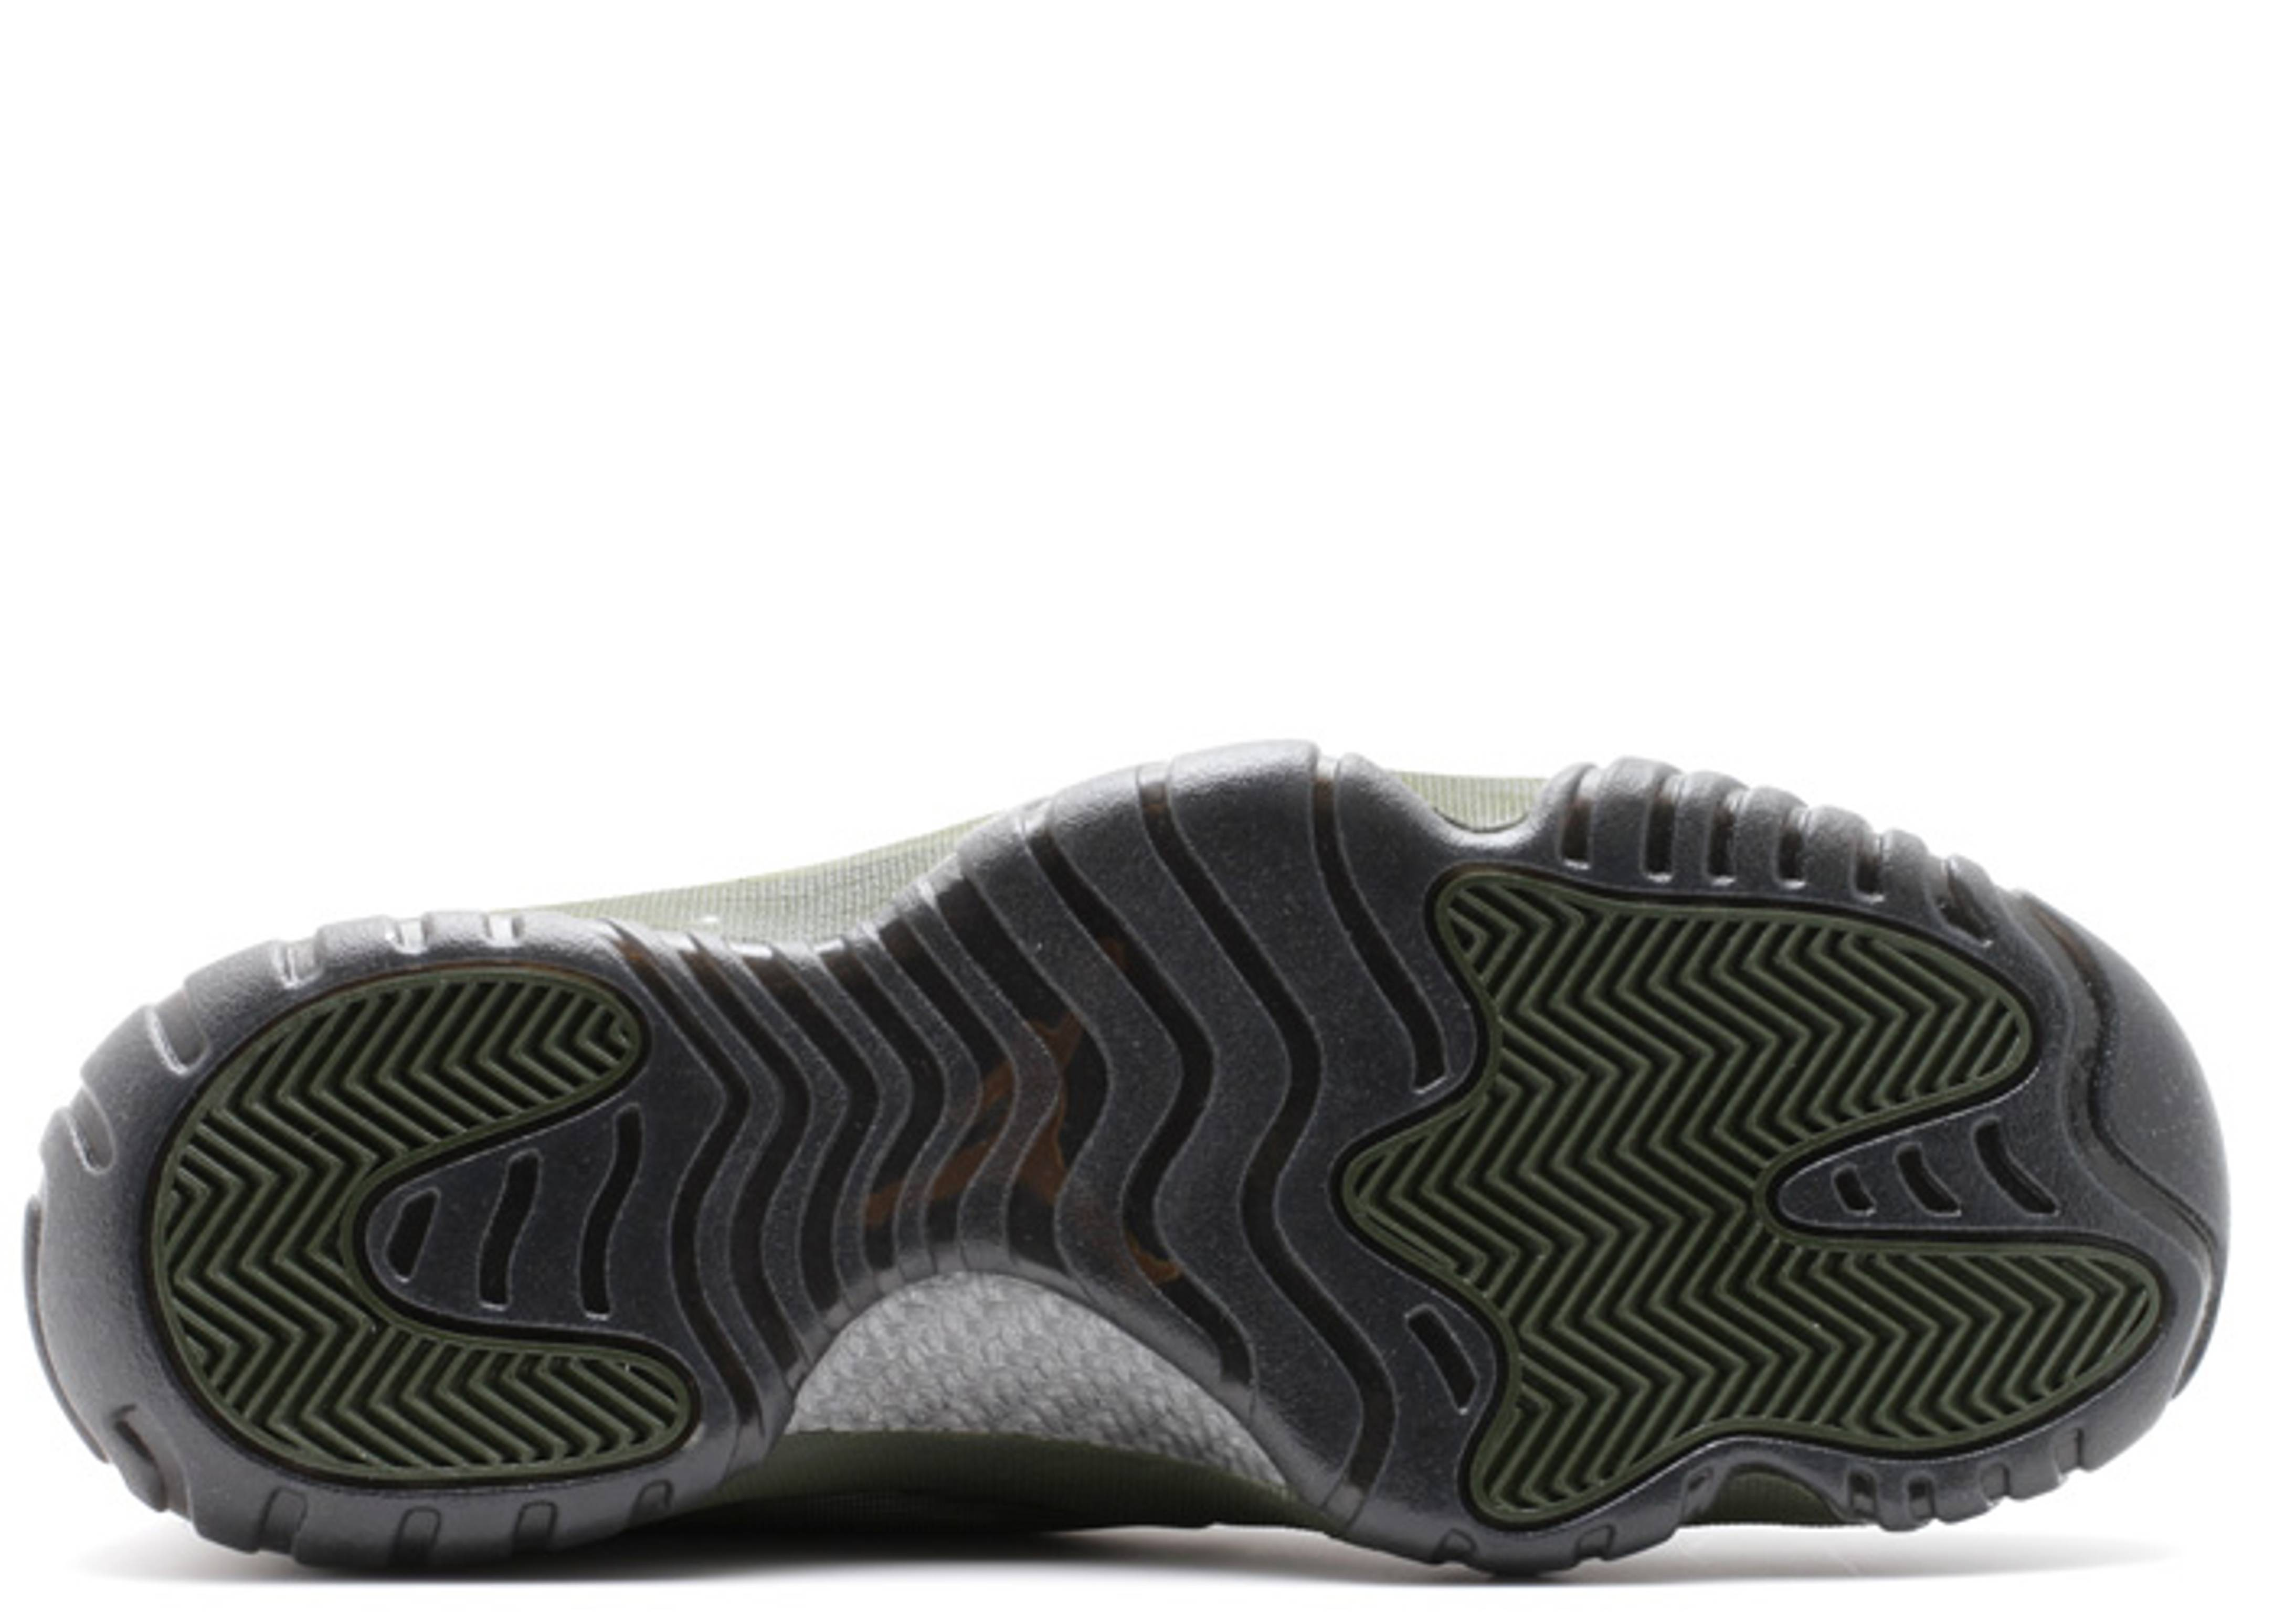 reputable site 2d38a 149af air jordan future